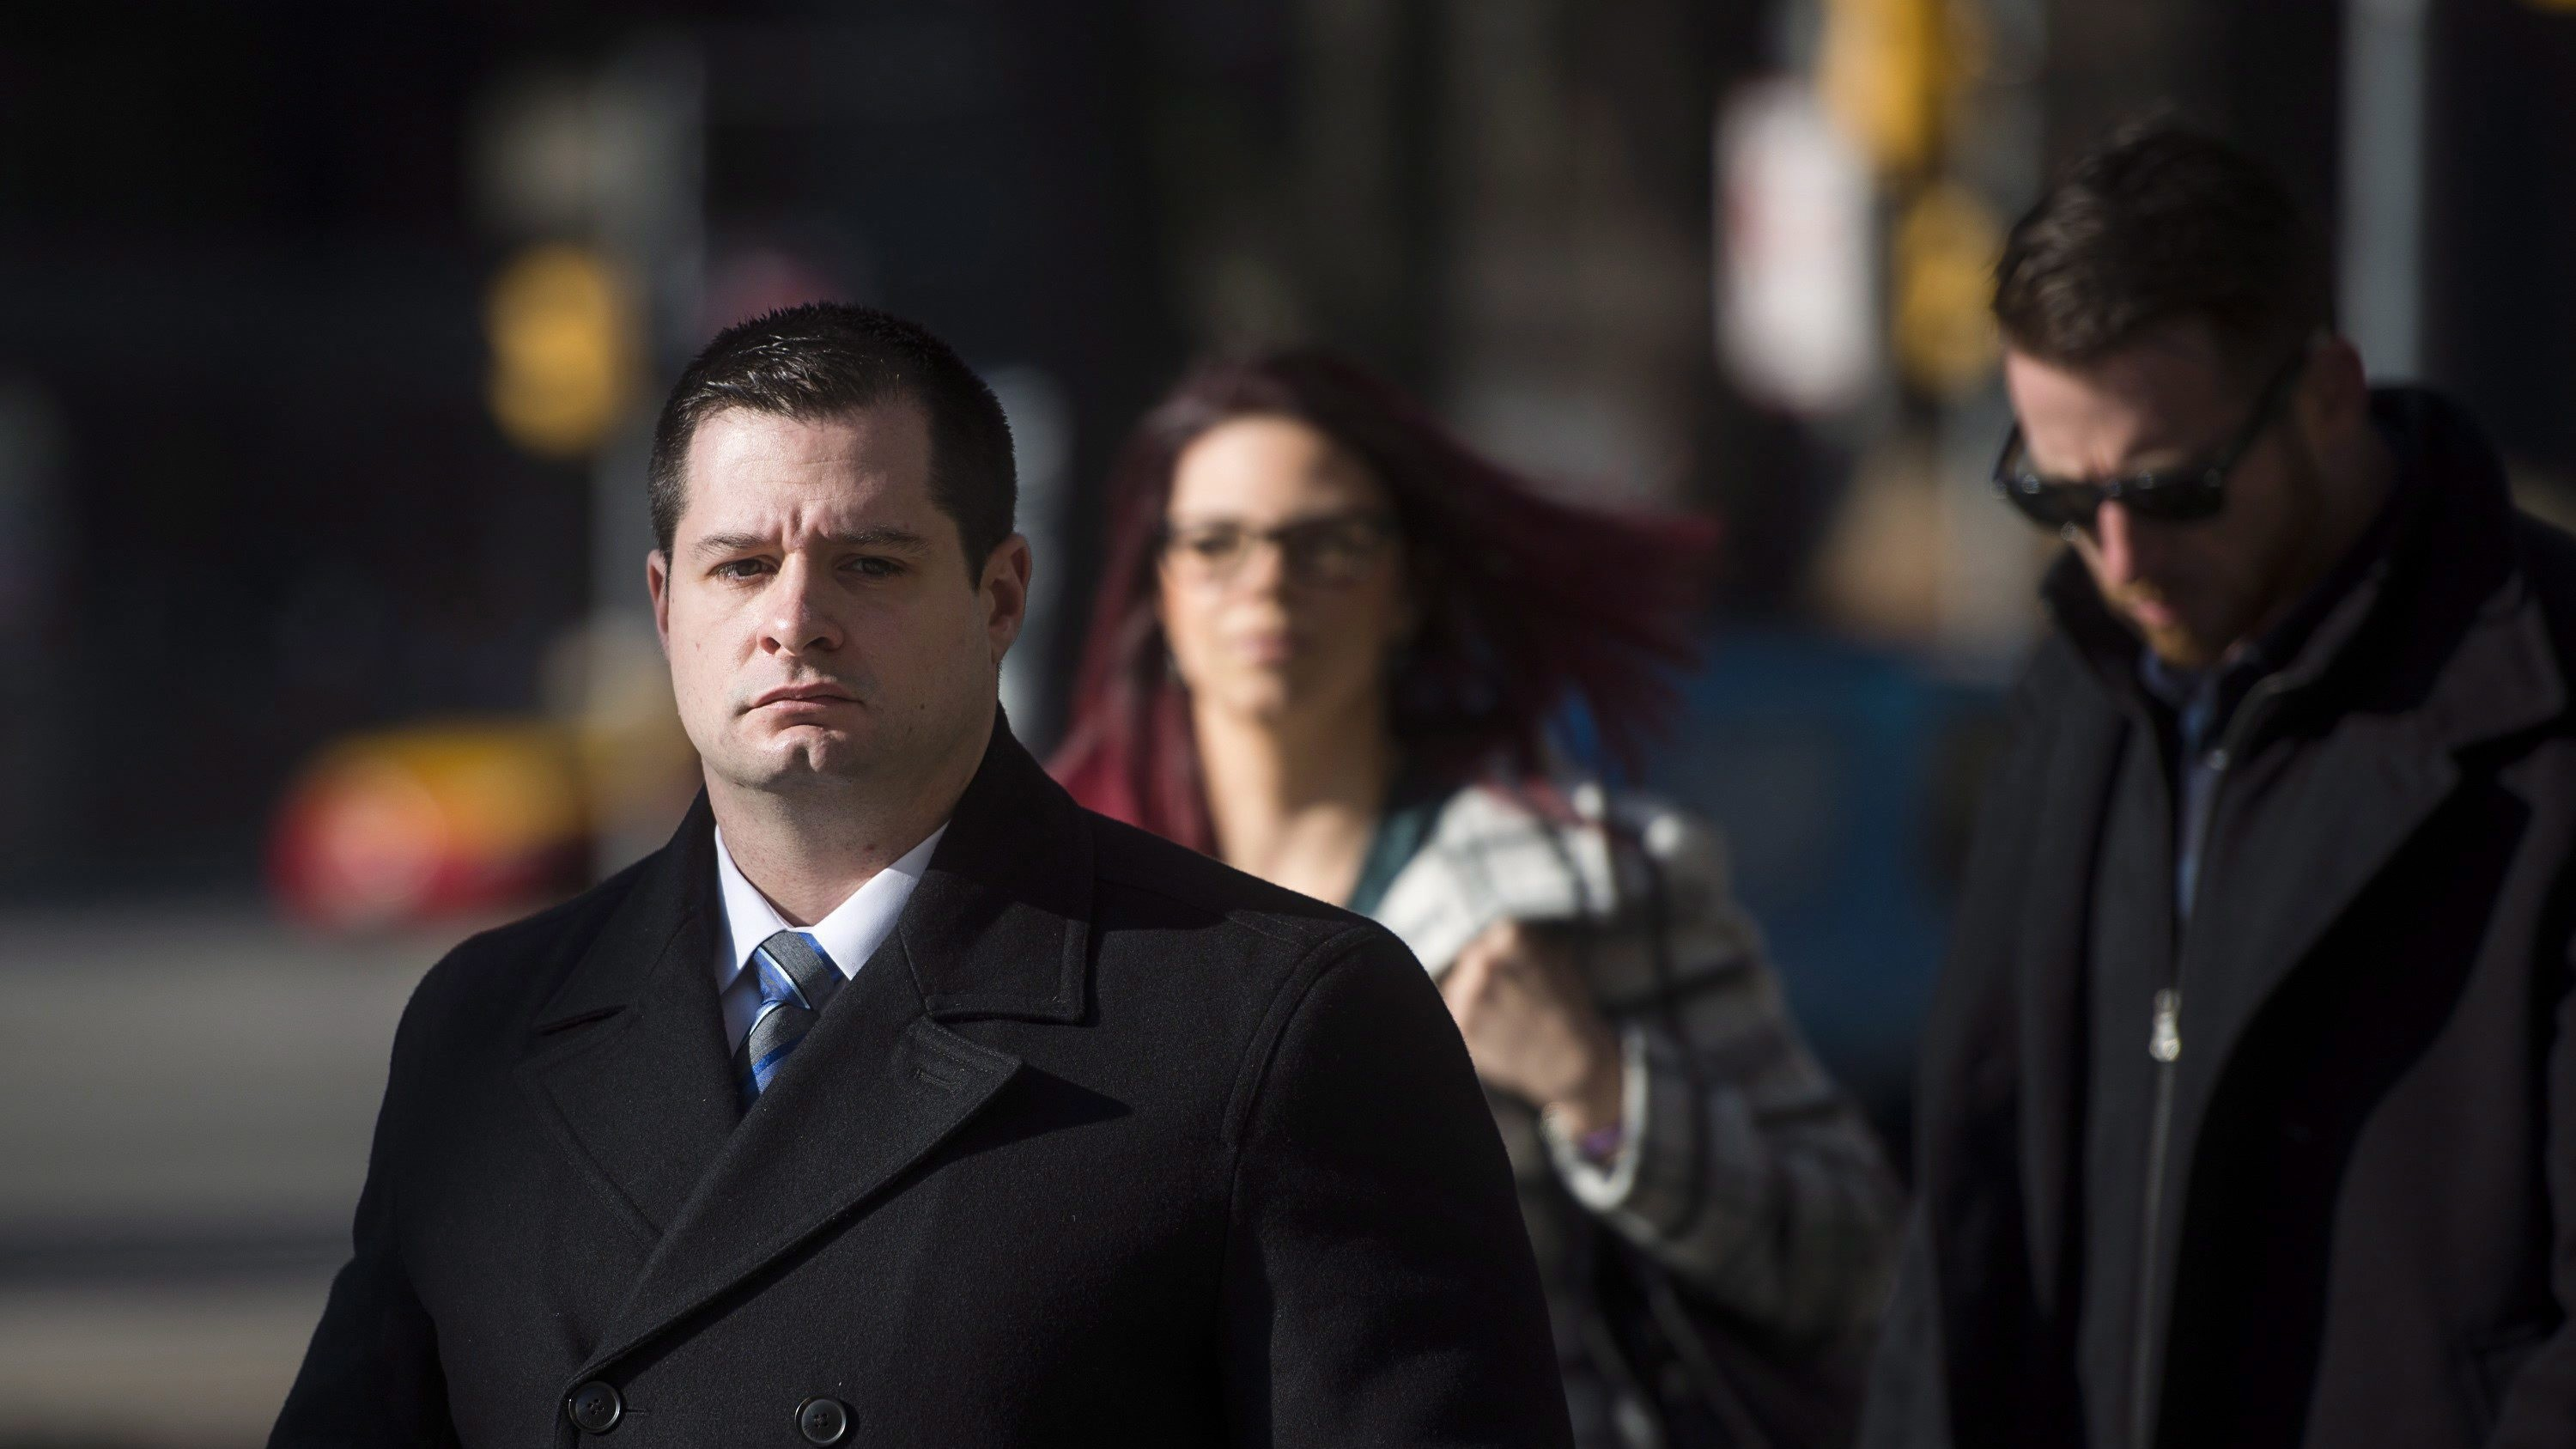 A Cop on Trial for Murder in Toronto Breaks His Silence